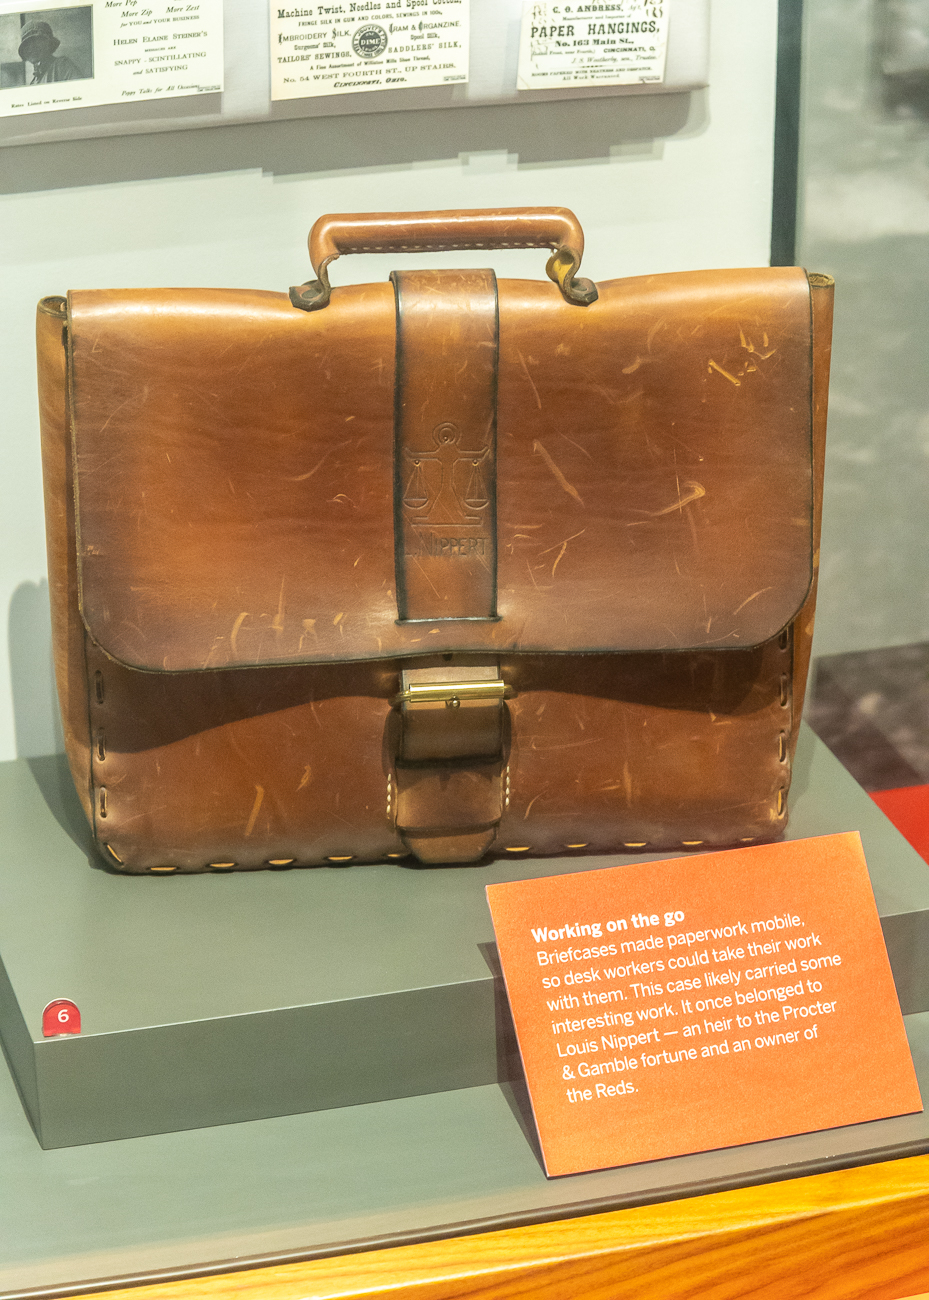 Louis Nippert's personal briefcase is on display. / Image: Phil Armstrong, Cincinnati Refined // Published: 10.23.20